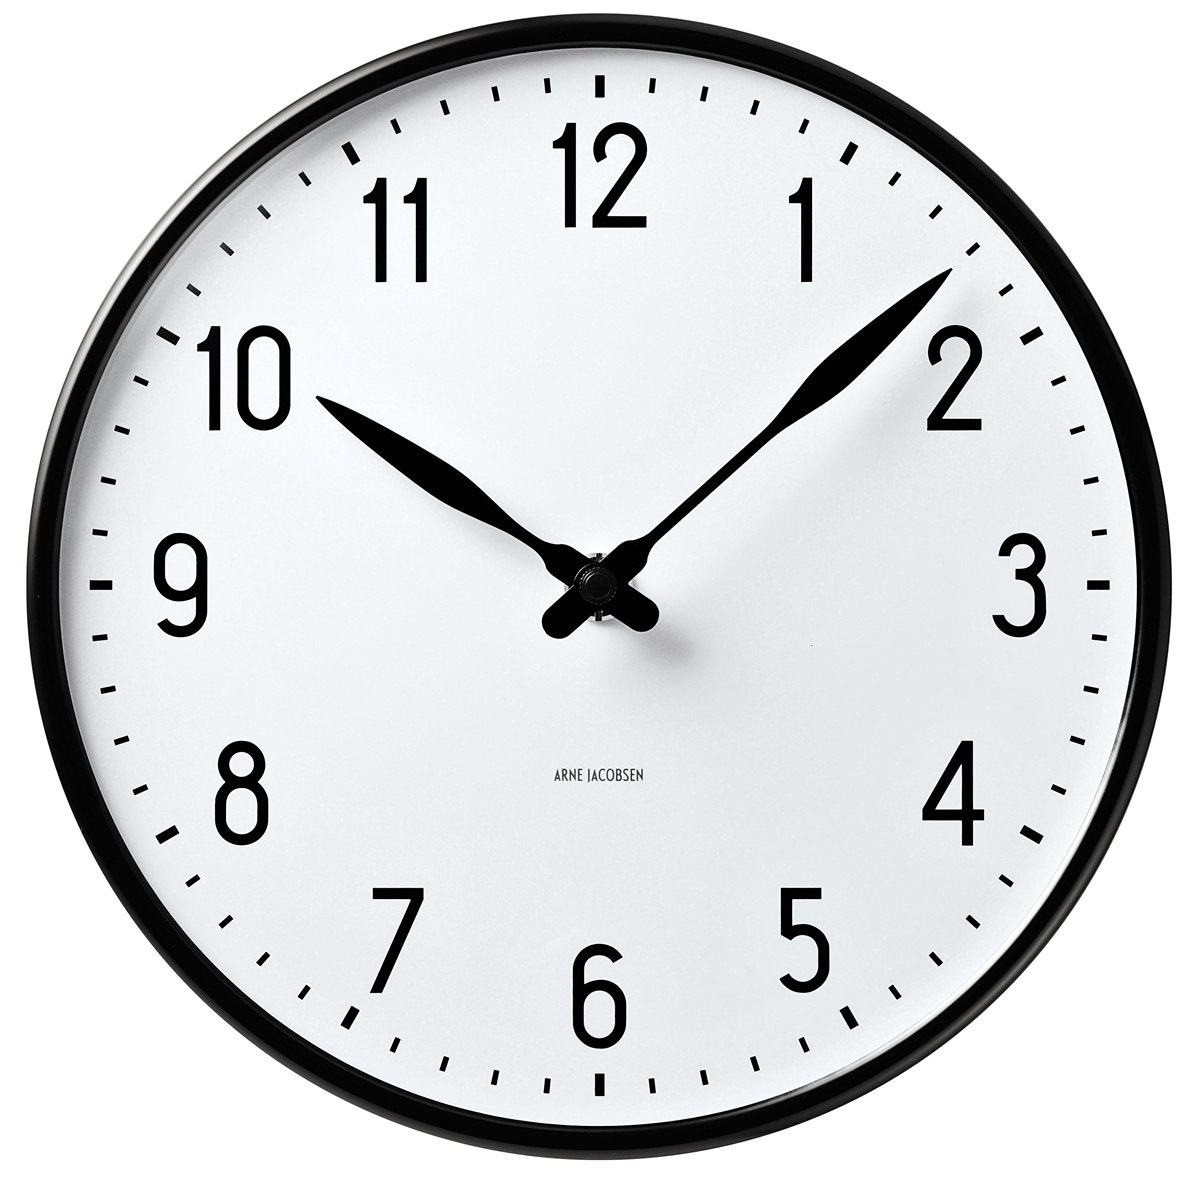 ARNE JACOBSEN - Wall Clock Station  ステーション クロック 29cm